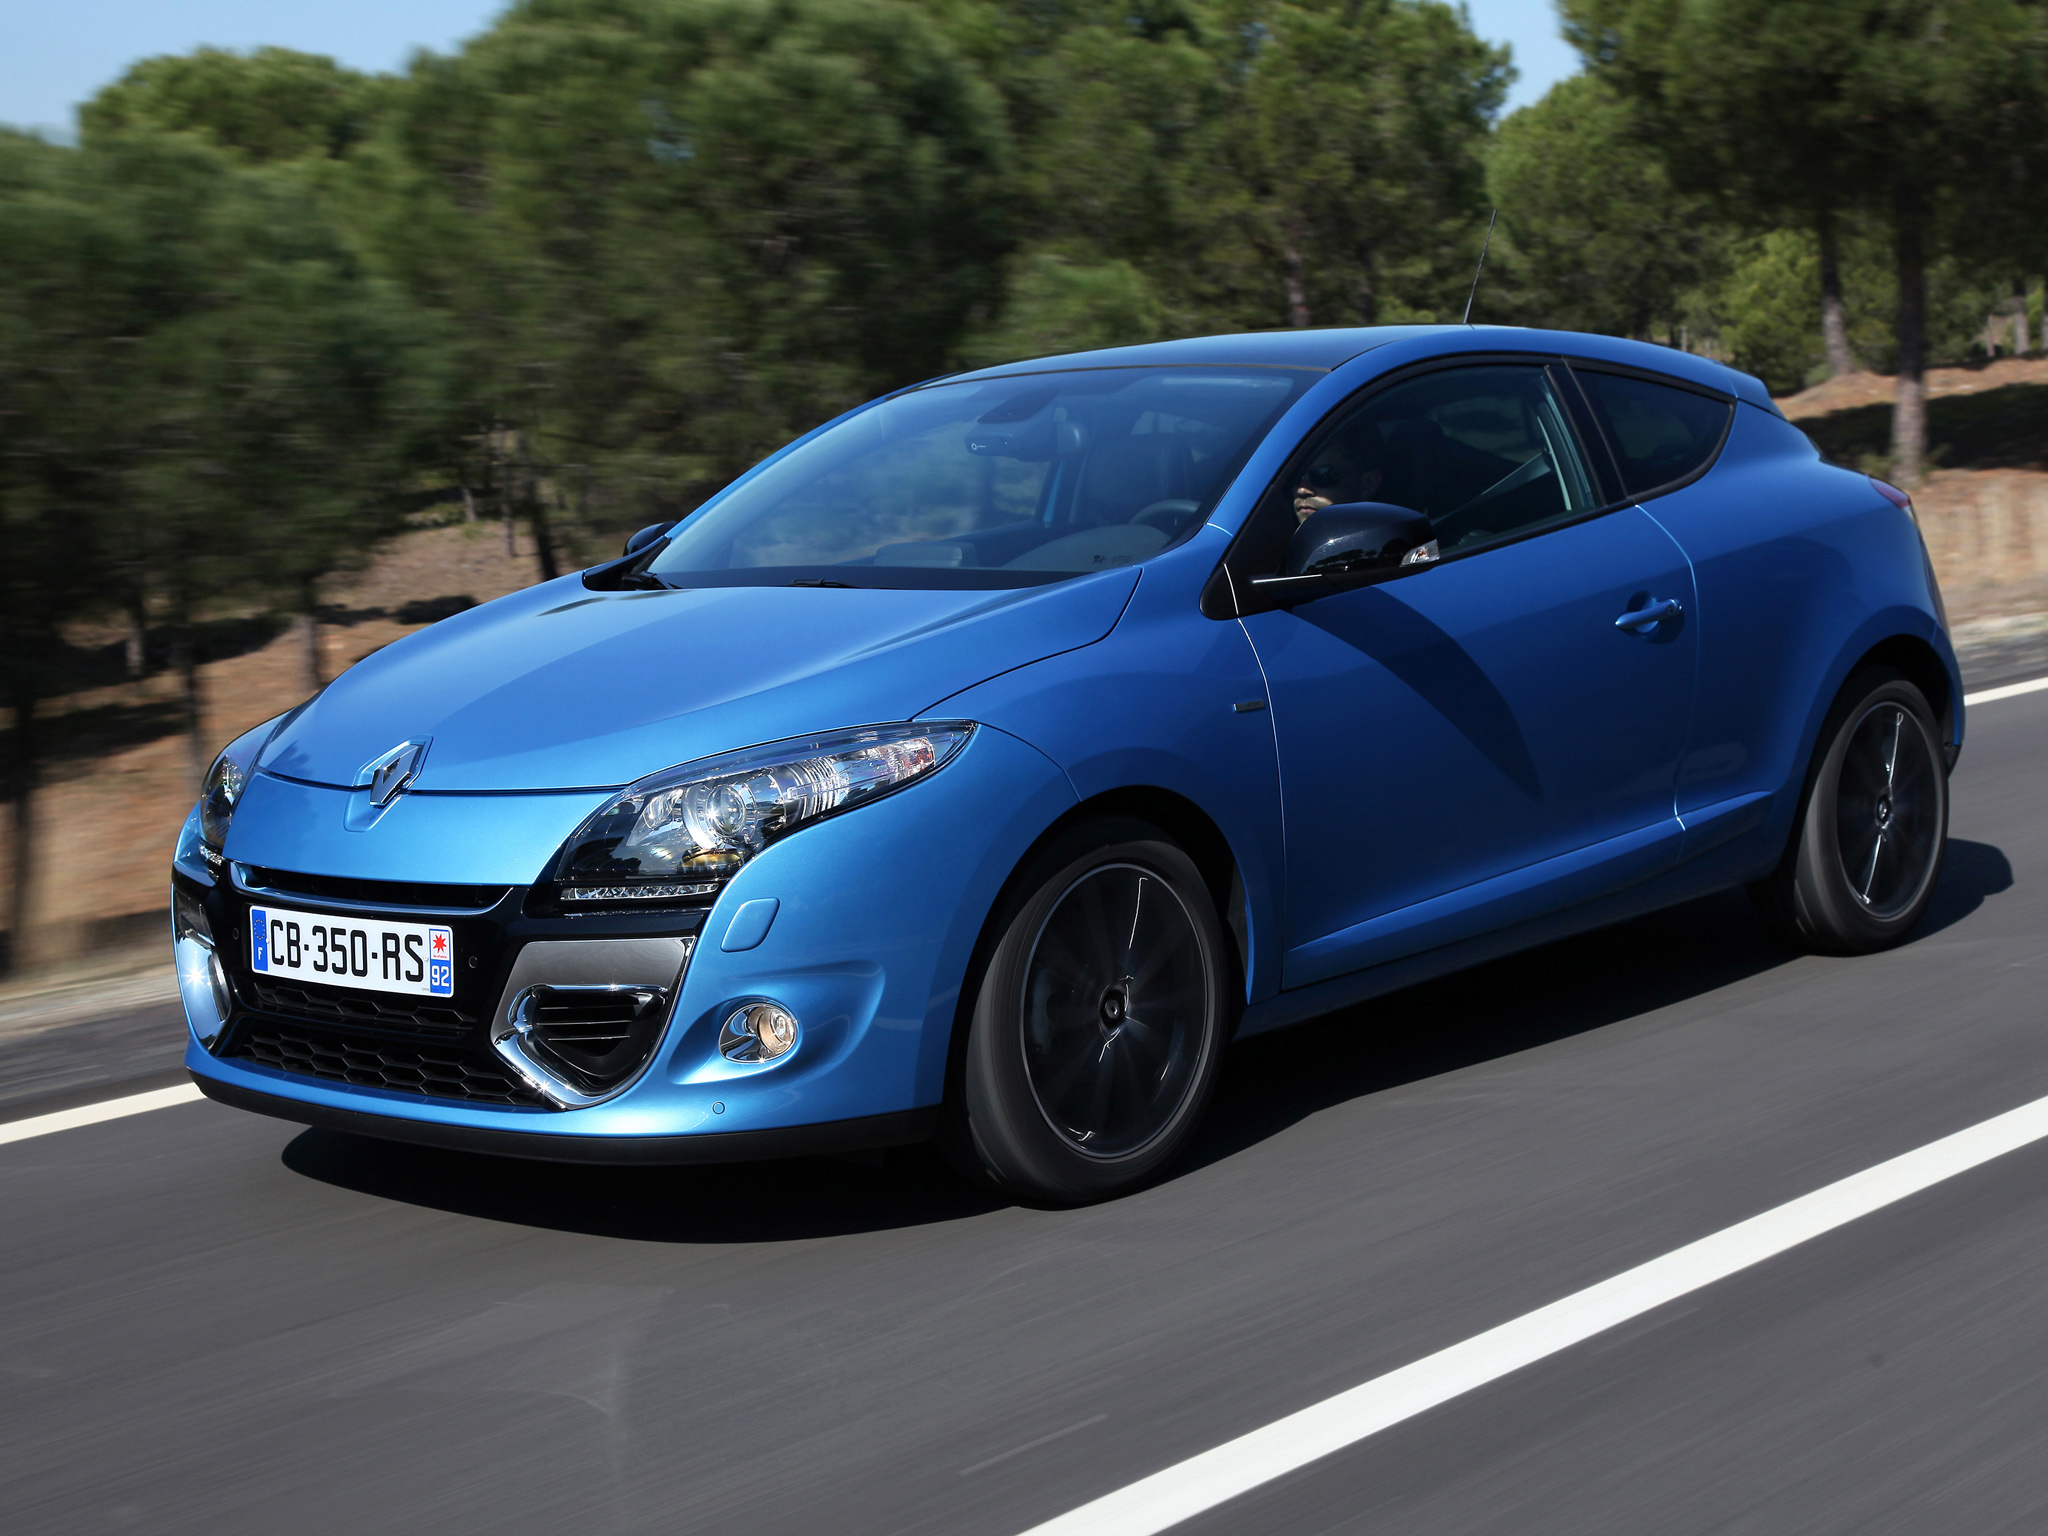 renault megane iii coupe 2013 wallpaper